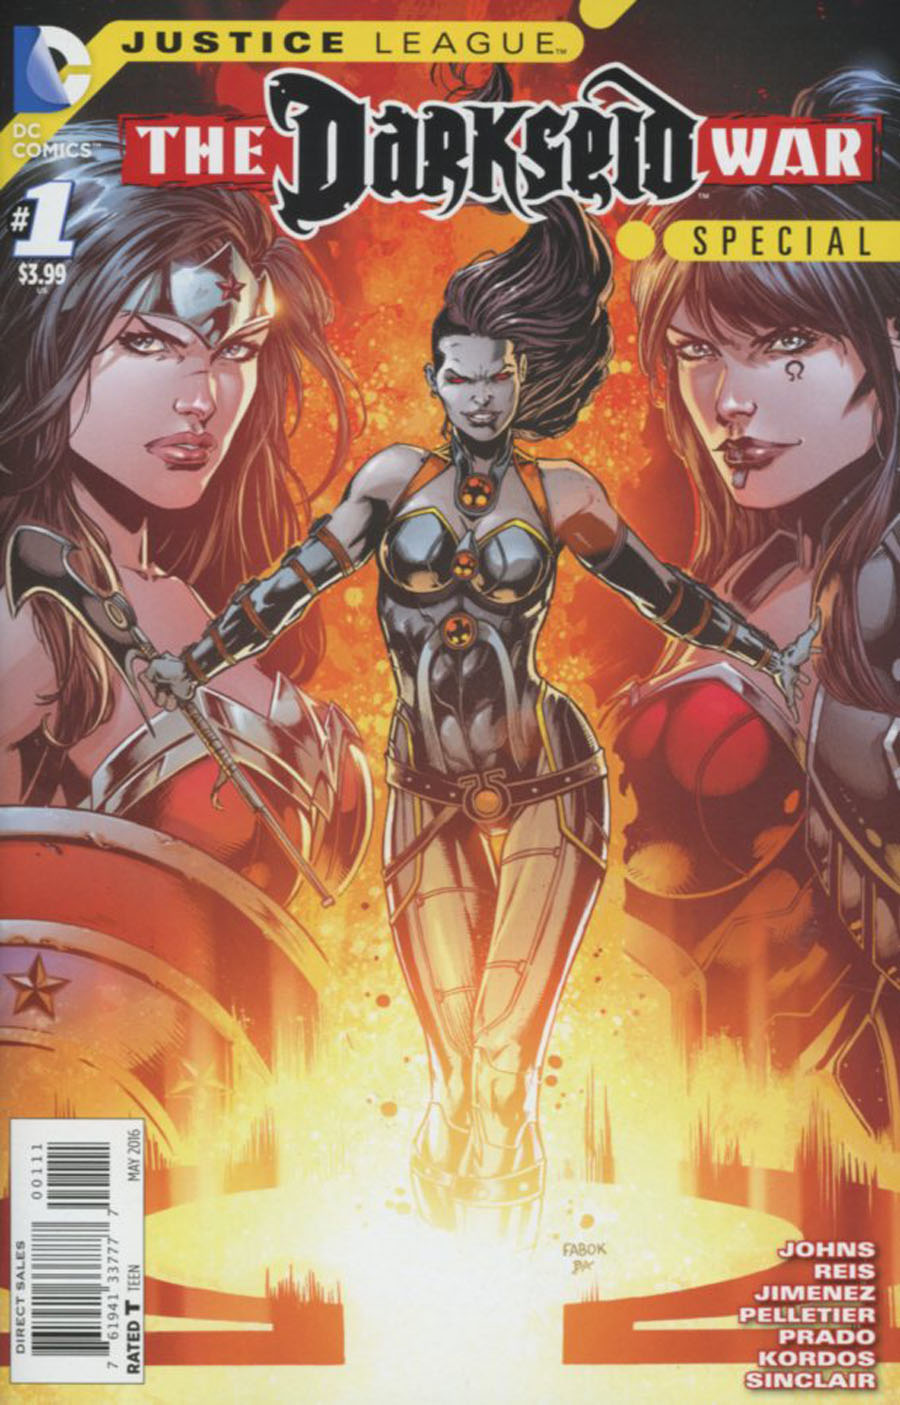 Justice League - Darkseid War Special #1